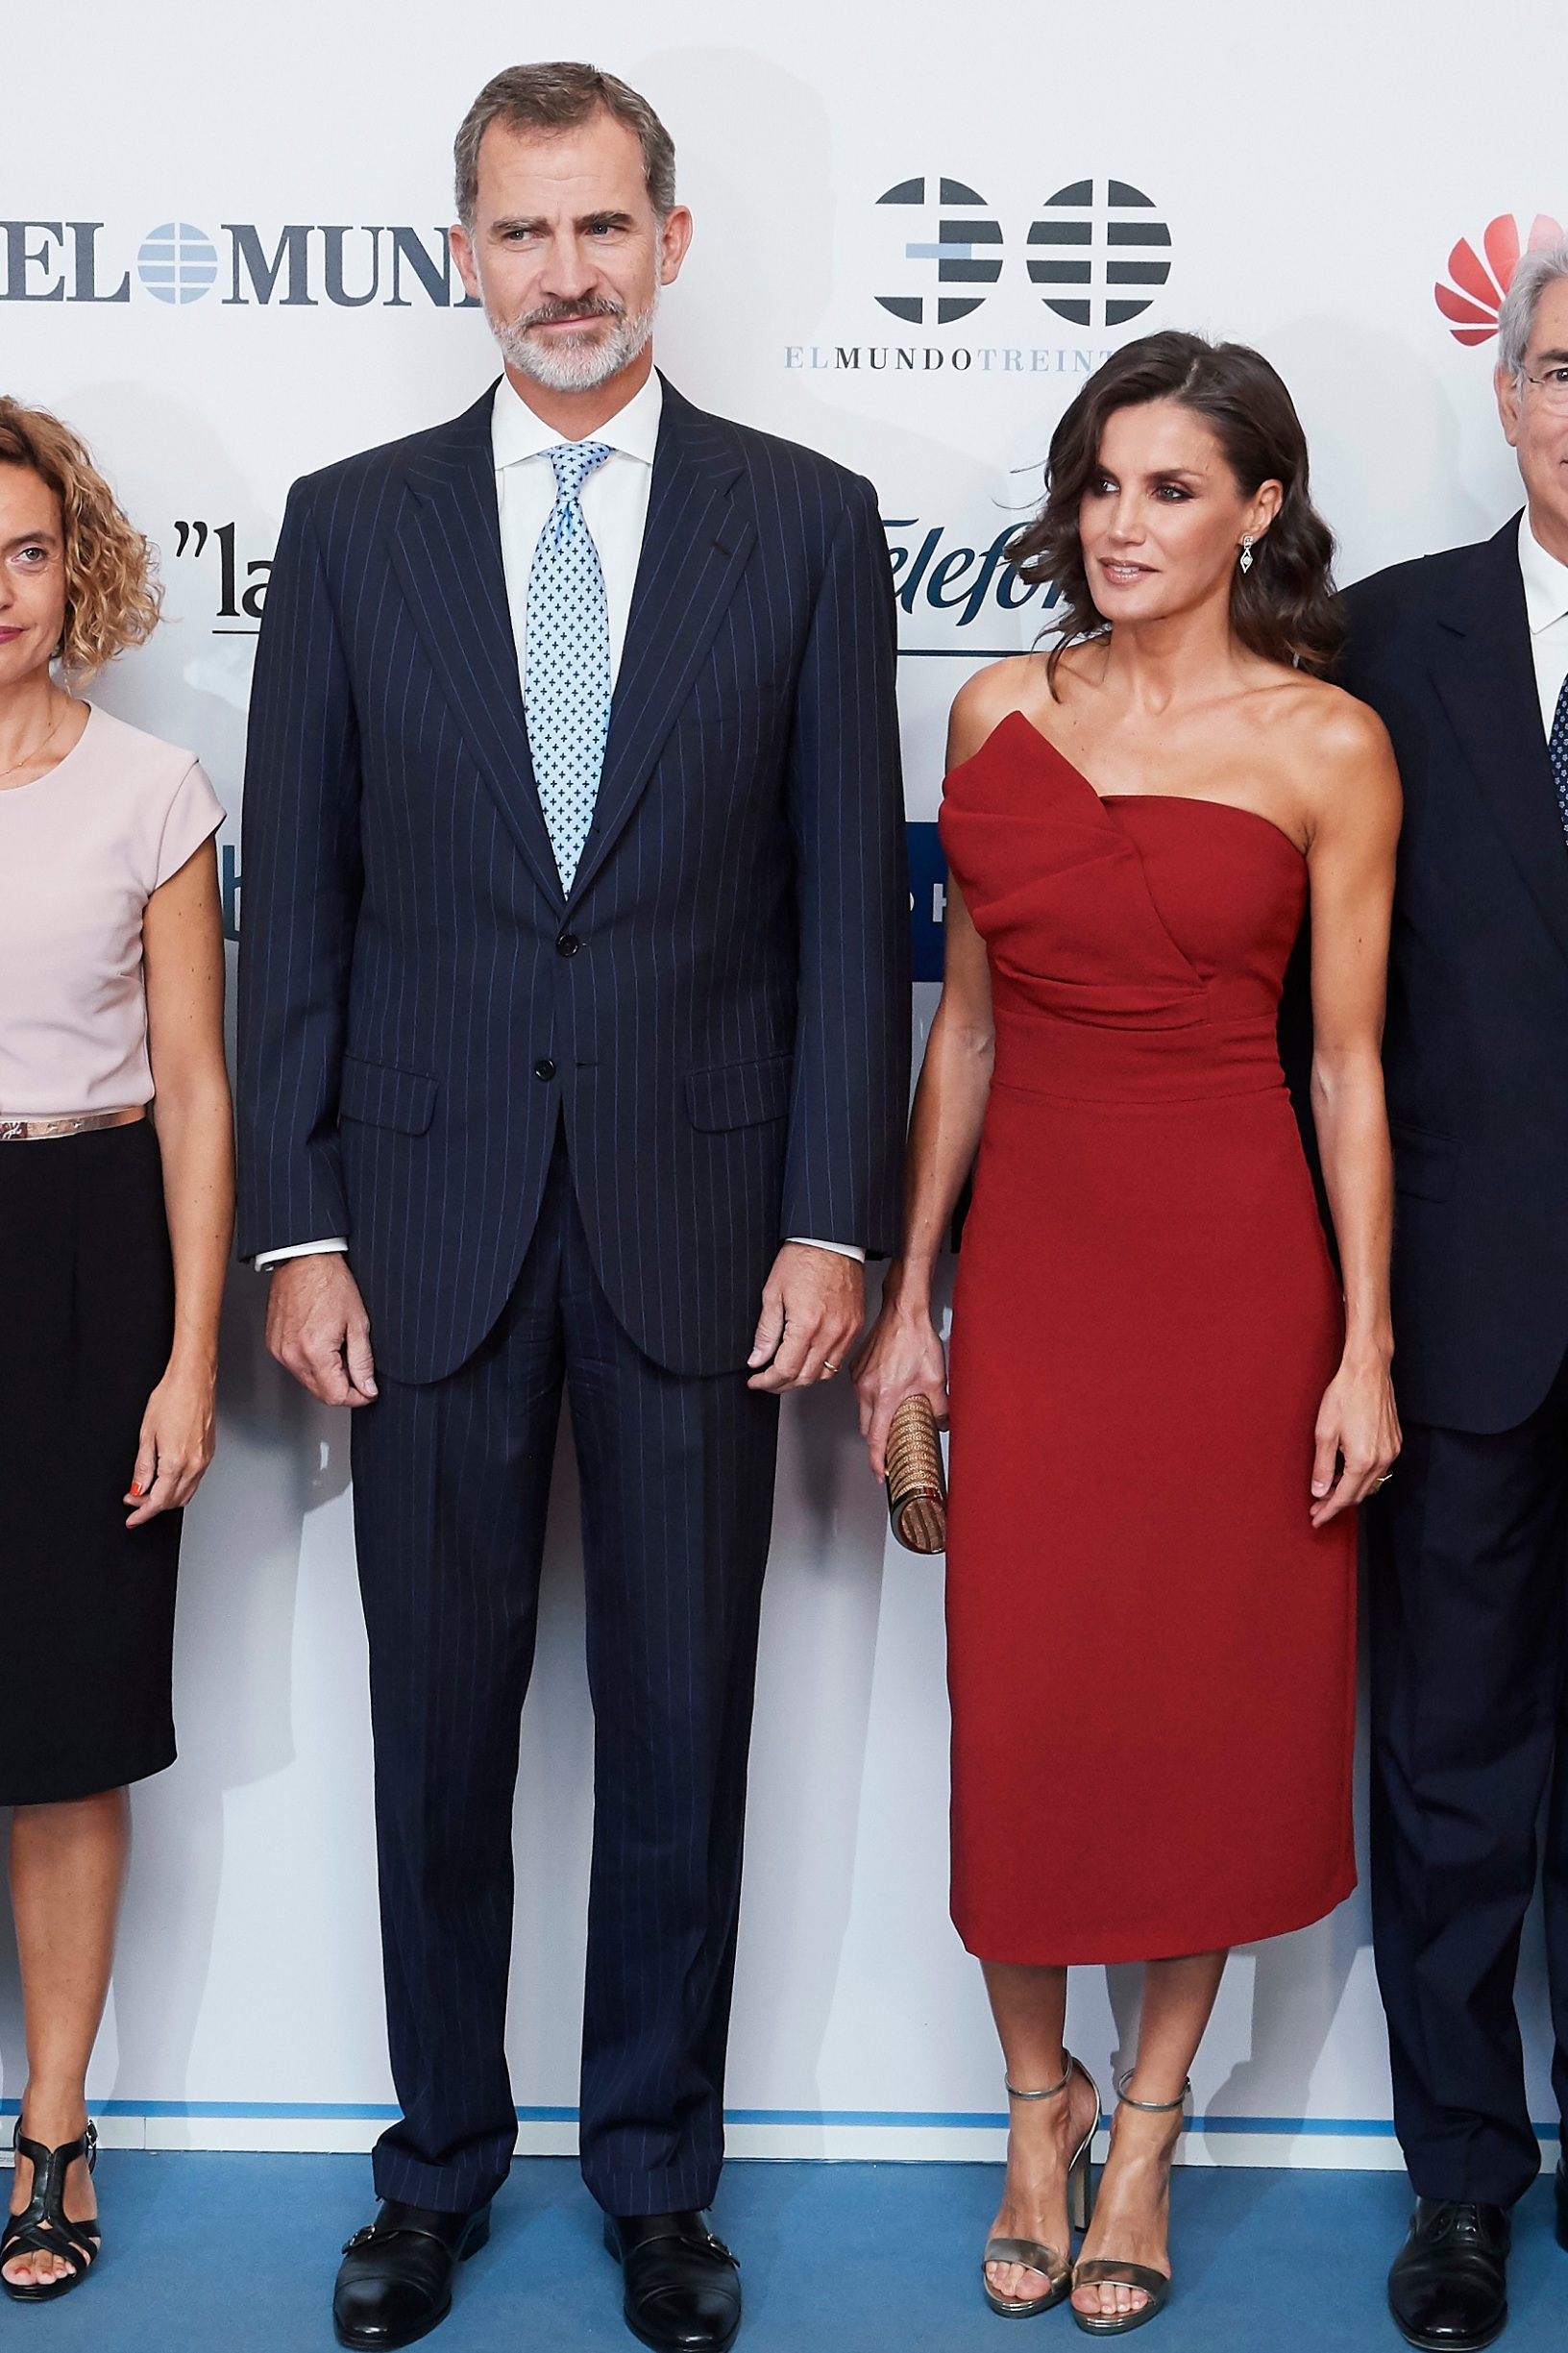 MADRID, SPAIN - OCTOBER 01: King Felipe VI of Spain and Queen Letizia of Spain attend 'El Mundo' newspaper 30th anniversary at the Palace Hotel on October 01, 2019 in Madrid, Spain. (Photo by Carlos Alvarez/Getty Images)